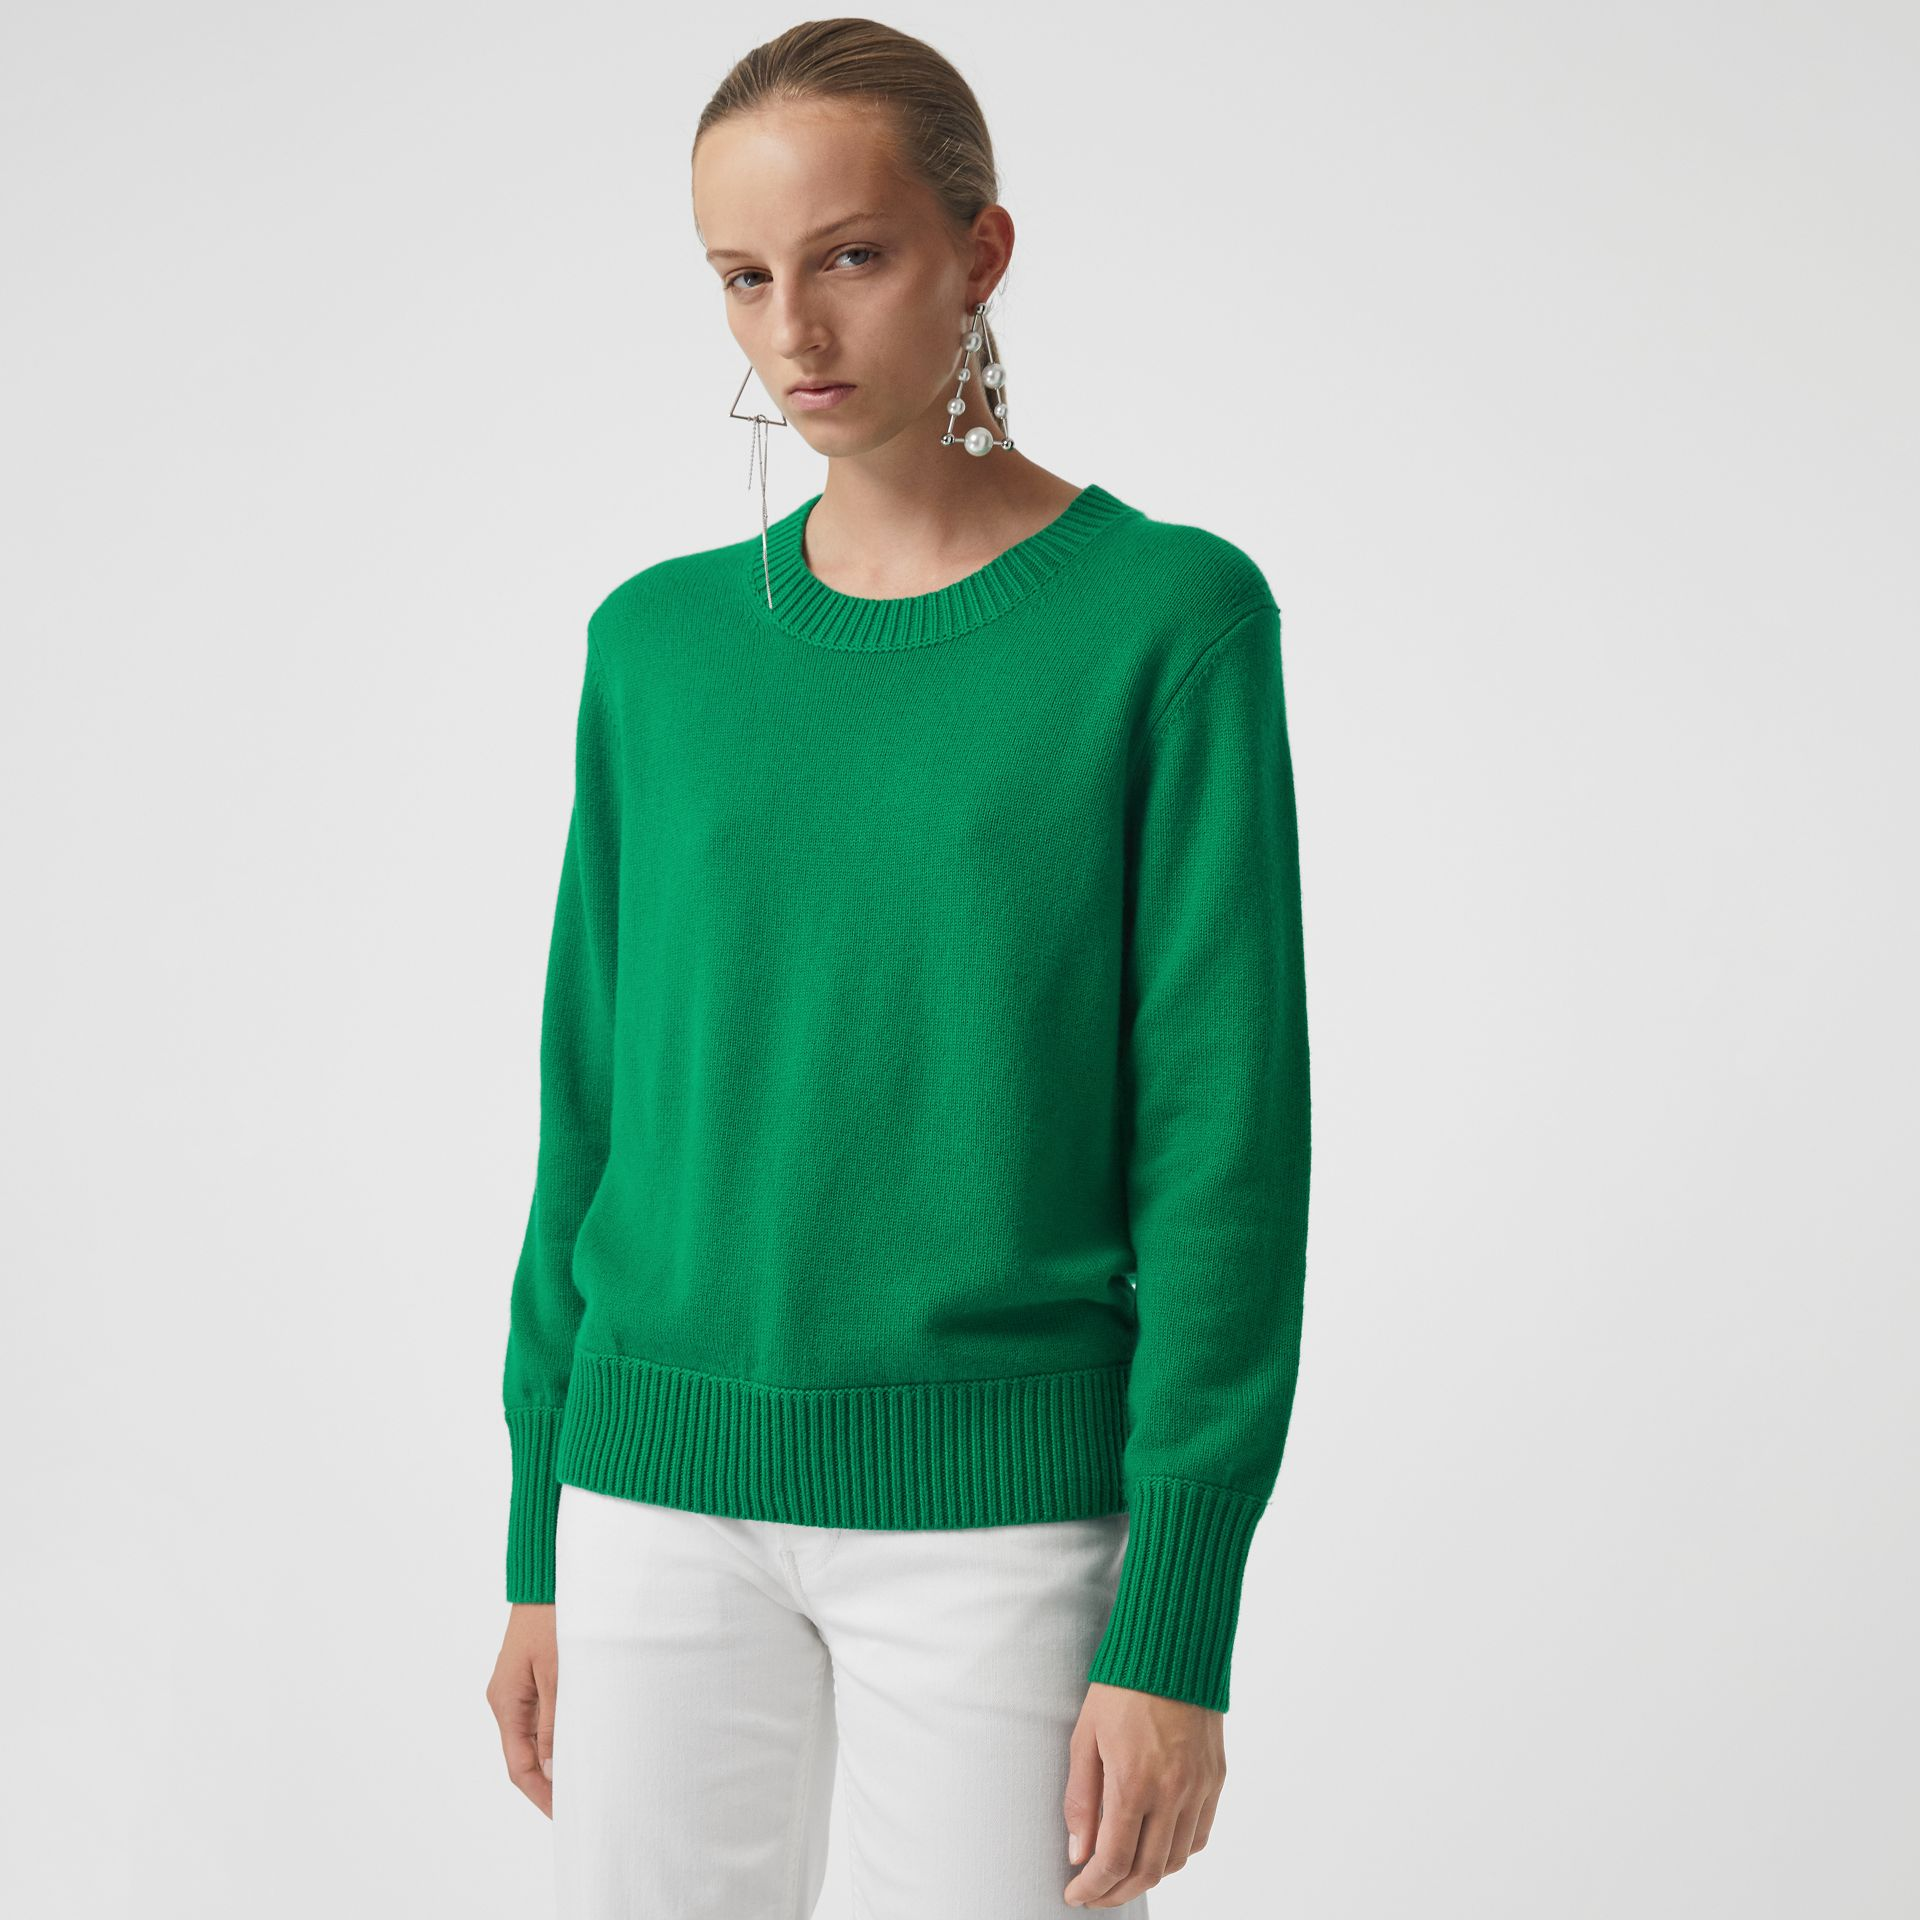 Archive Logo Appliqué Cashmere Sweater in Vibrant Green - Women | Burberry Singapore - gallery image 0